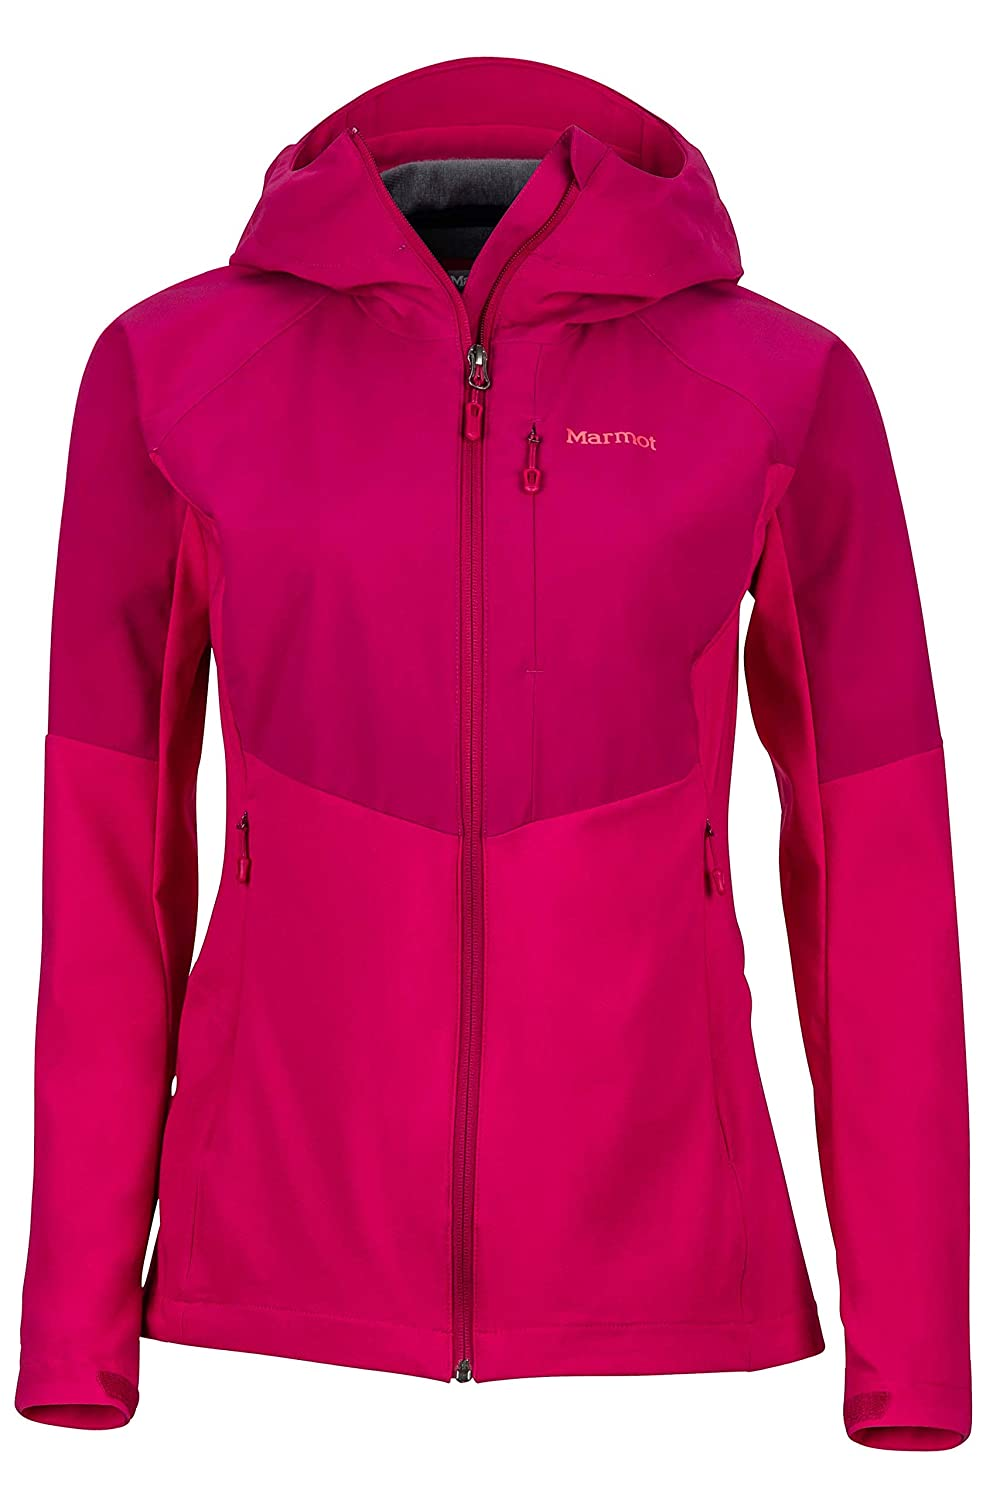 Sangria Marmot Roam Women's Lightweight Waterproof Hooded Rain Jacket